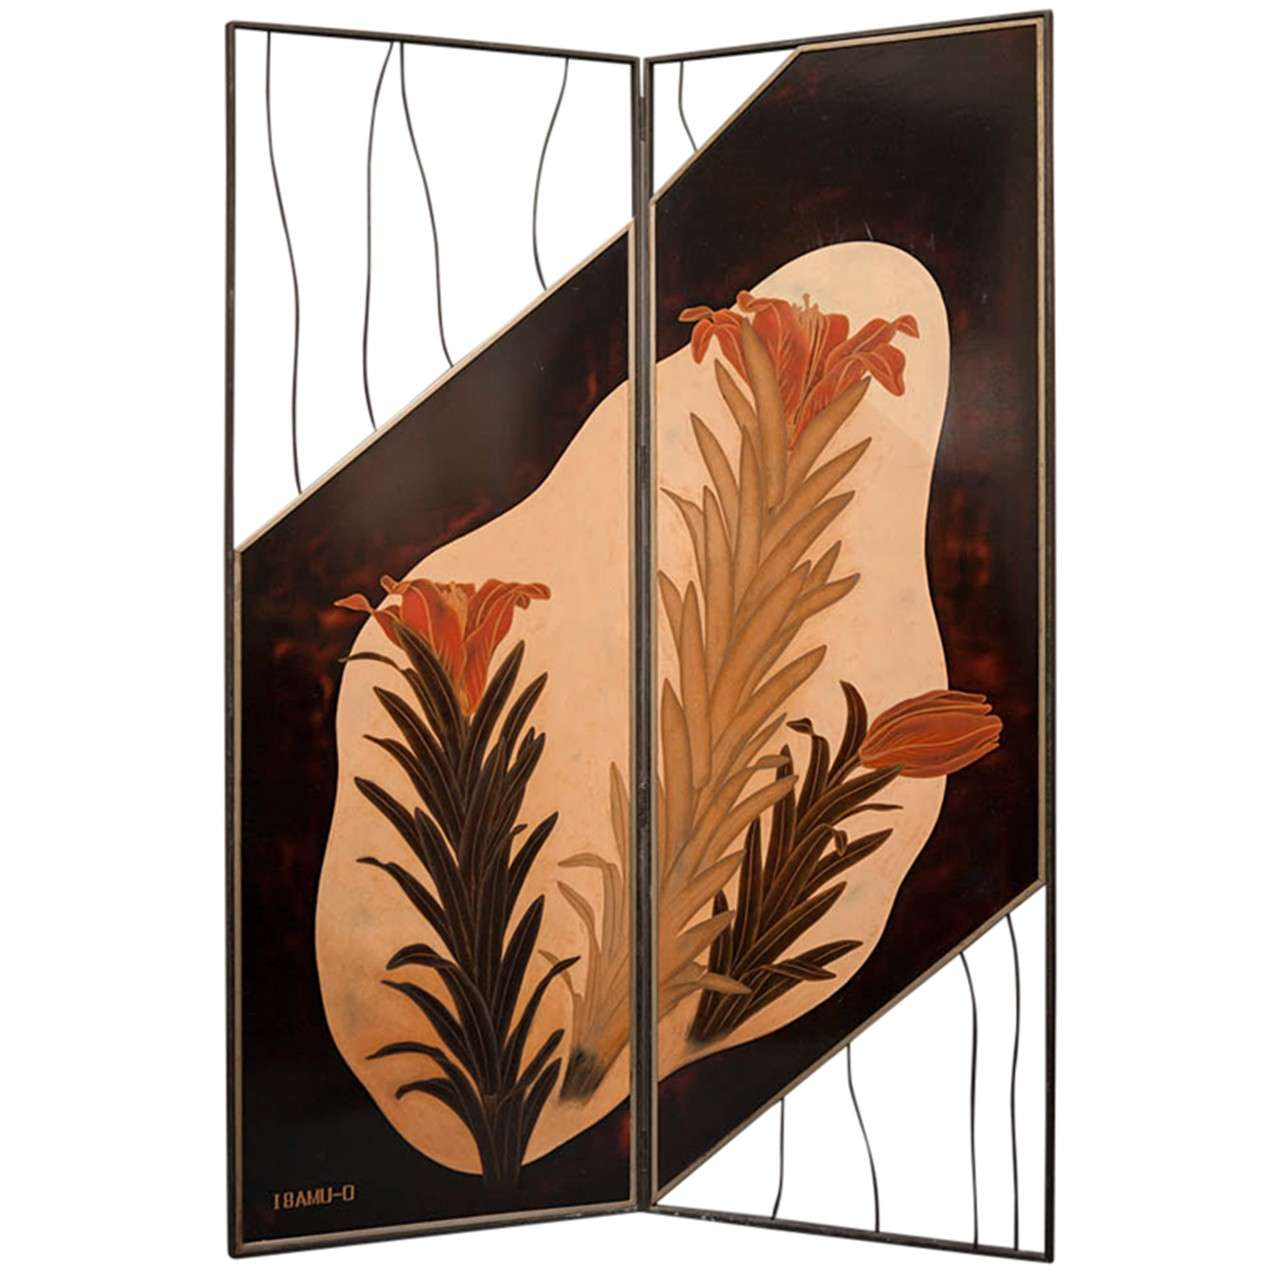 Japanese Lacquer Two-Panel Screen, Lily Flowers